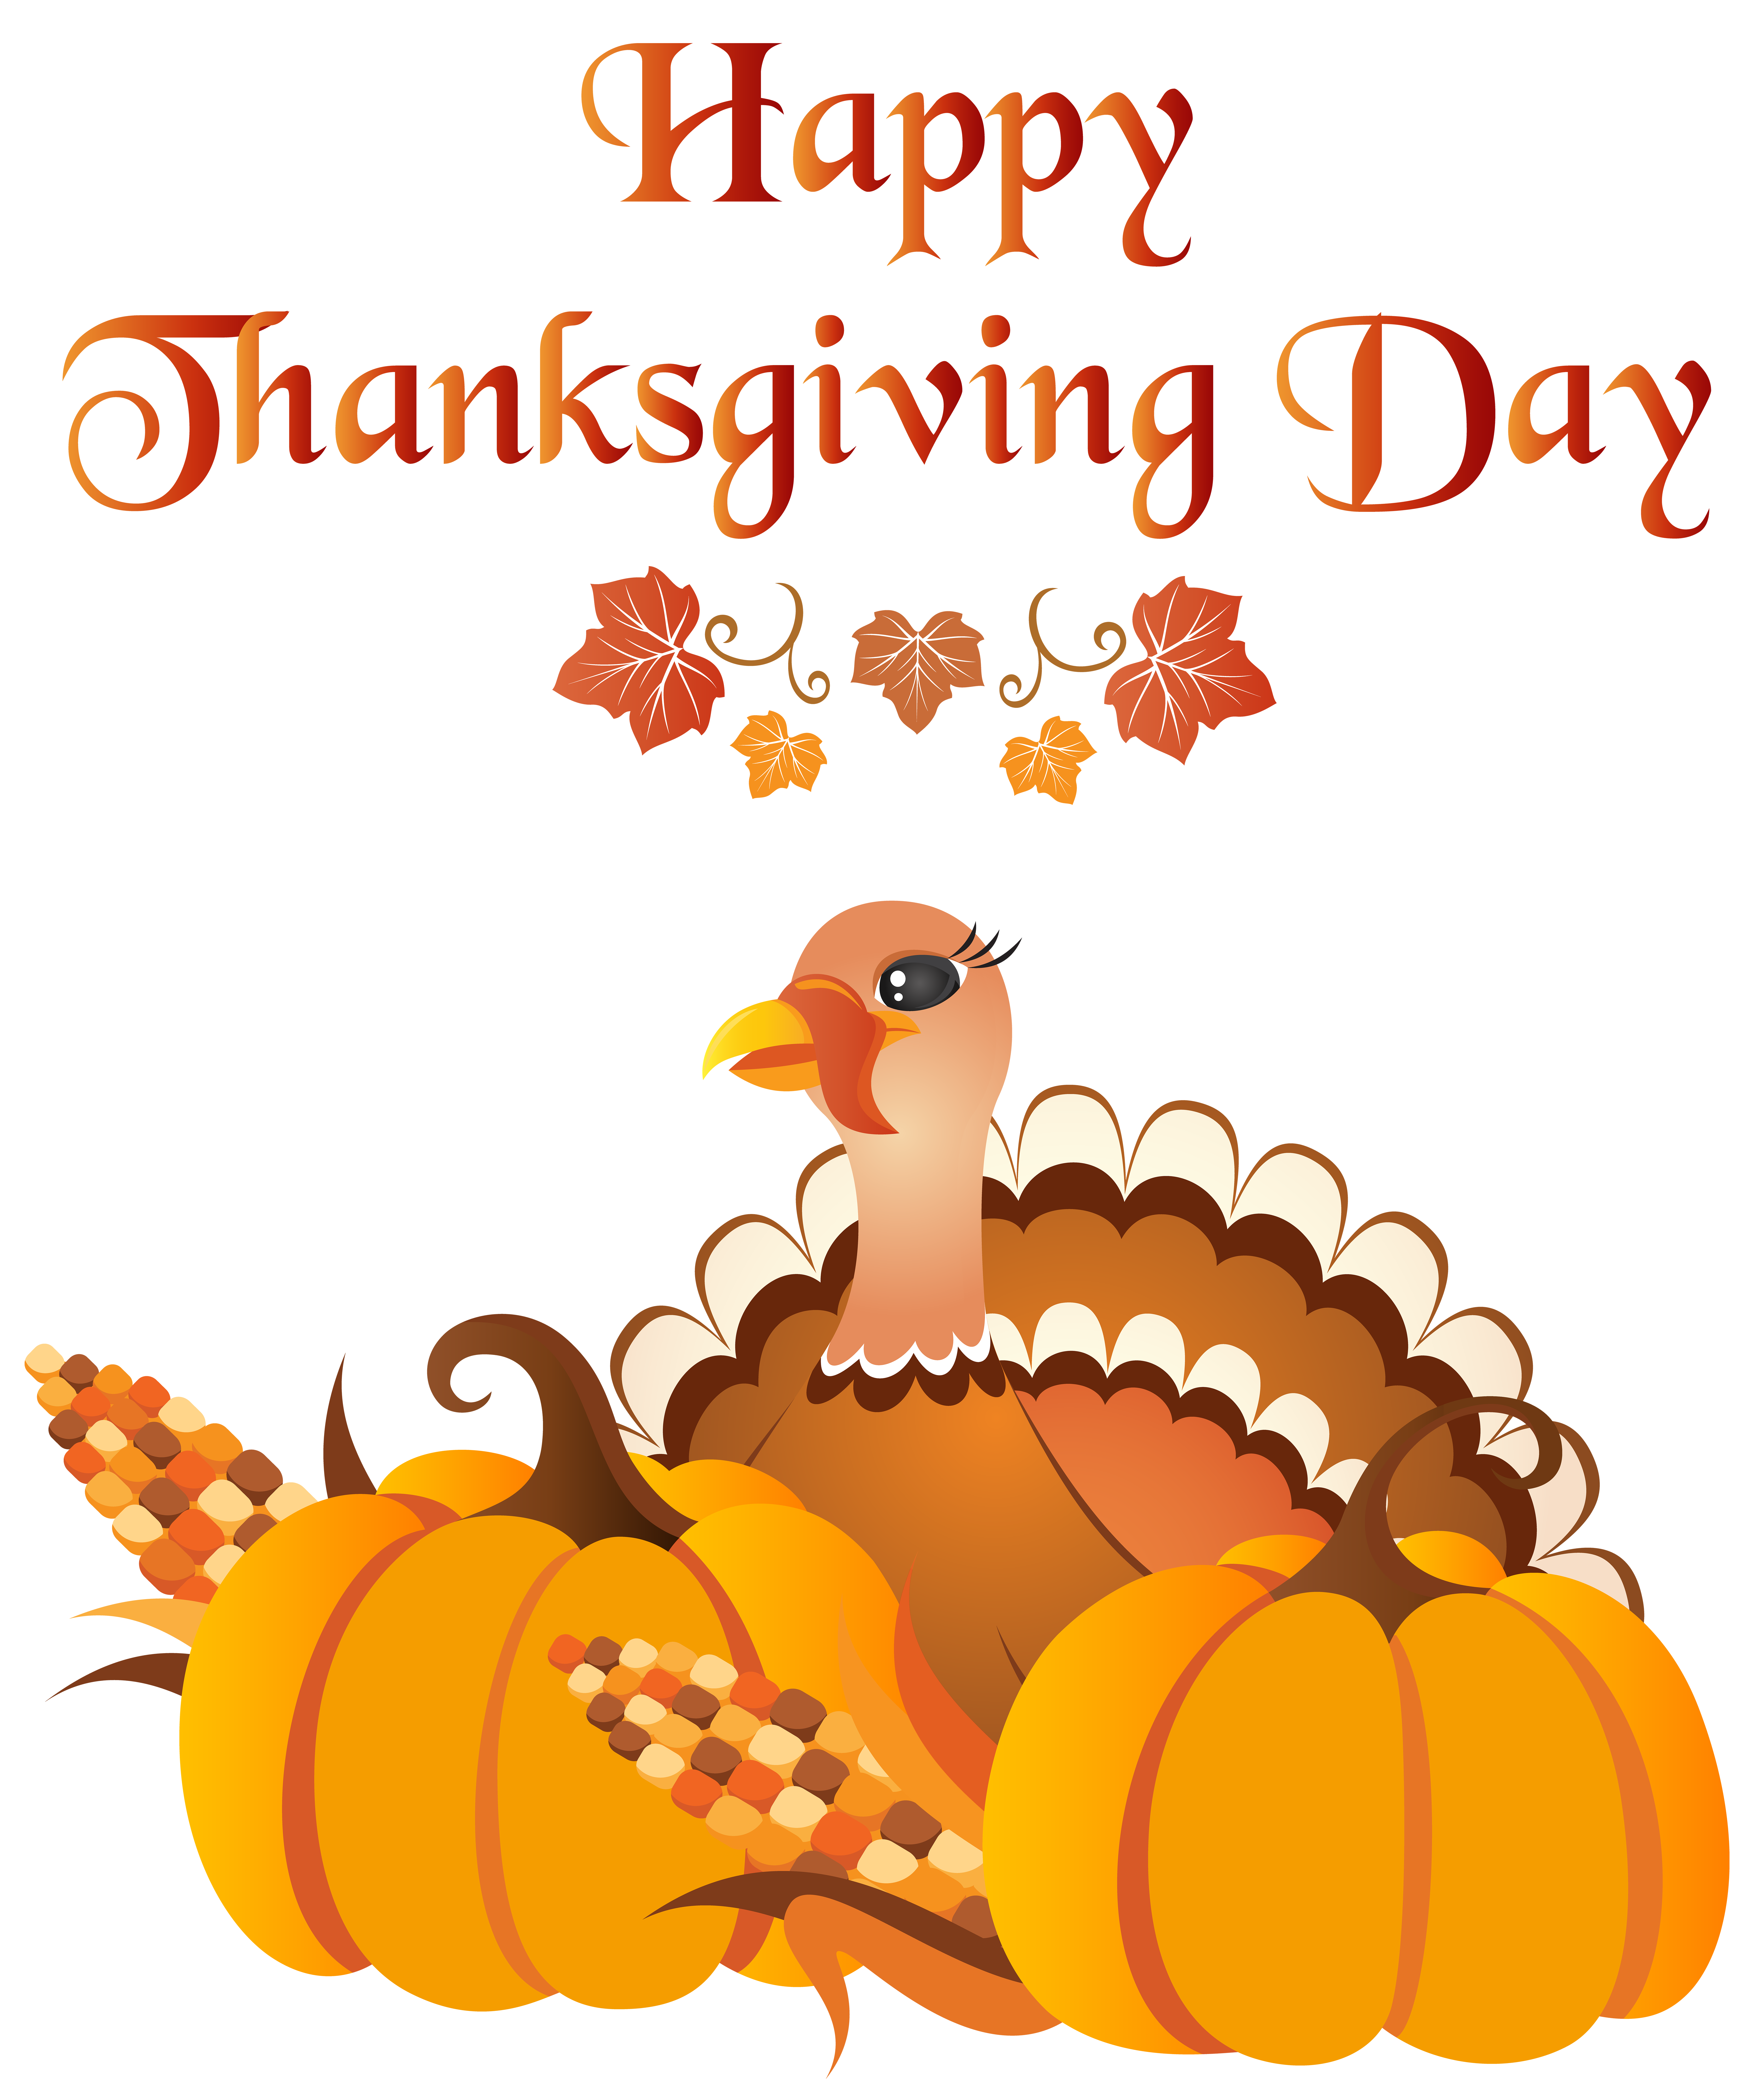 Happy Thanksgiving Day with Turkey PNG Clip Art Image.